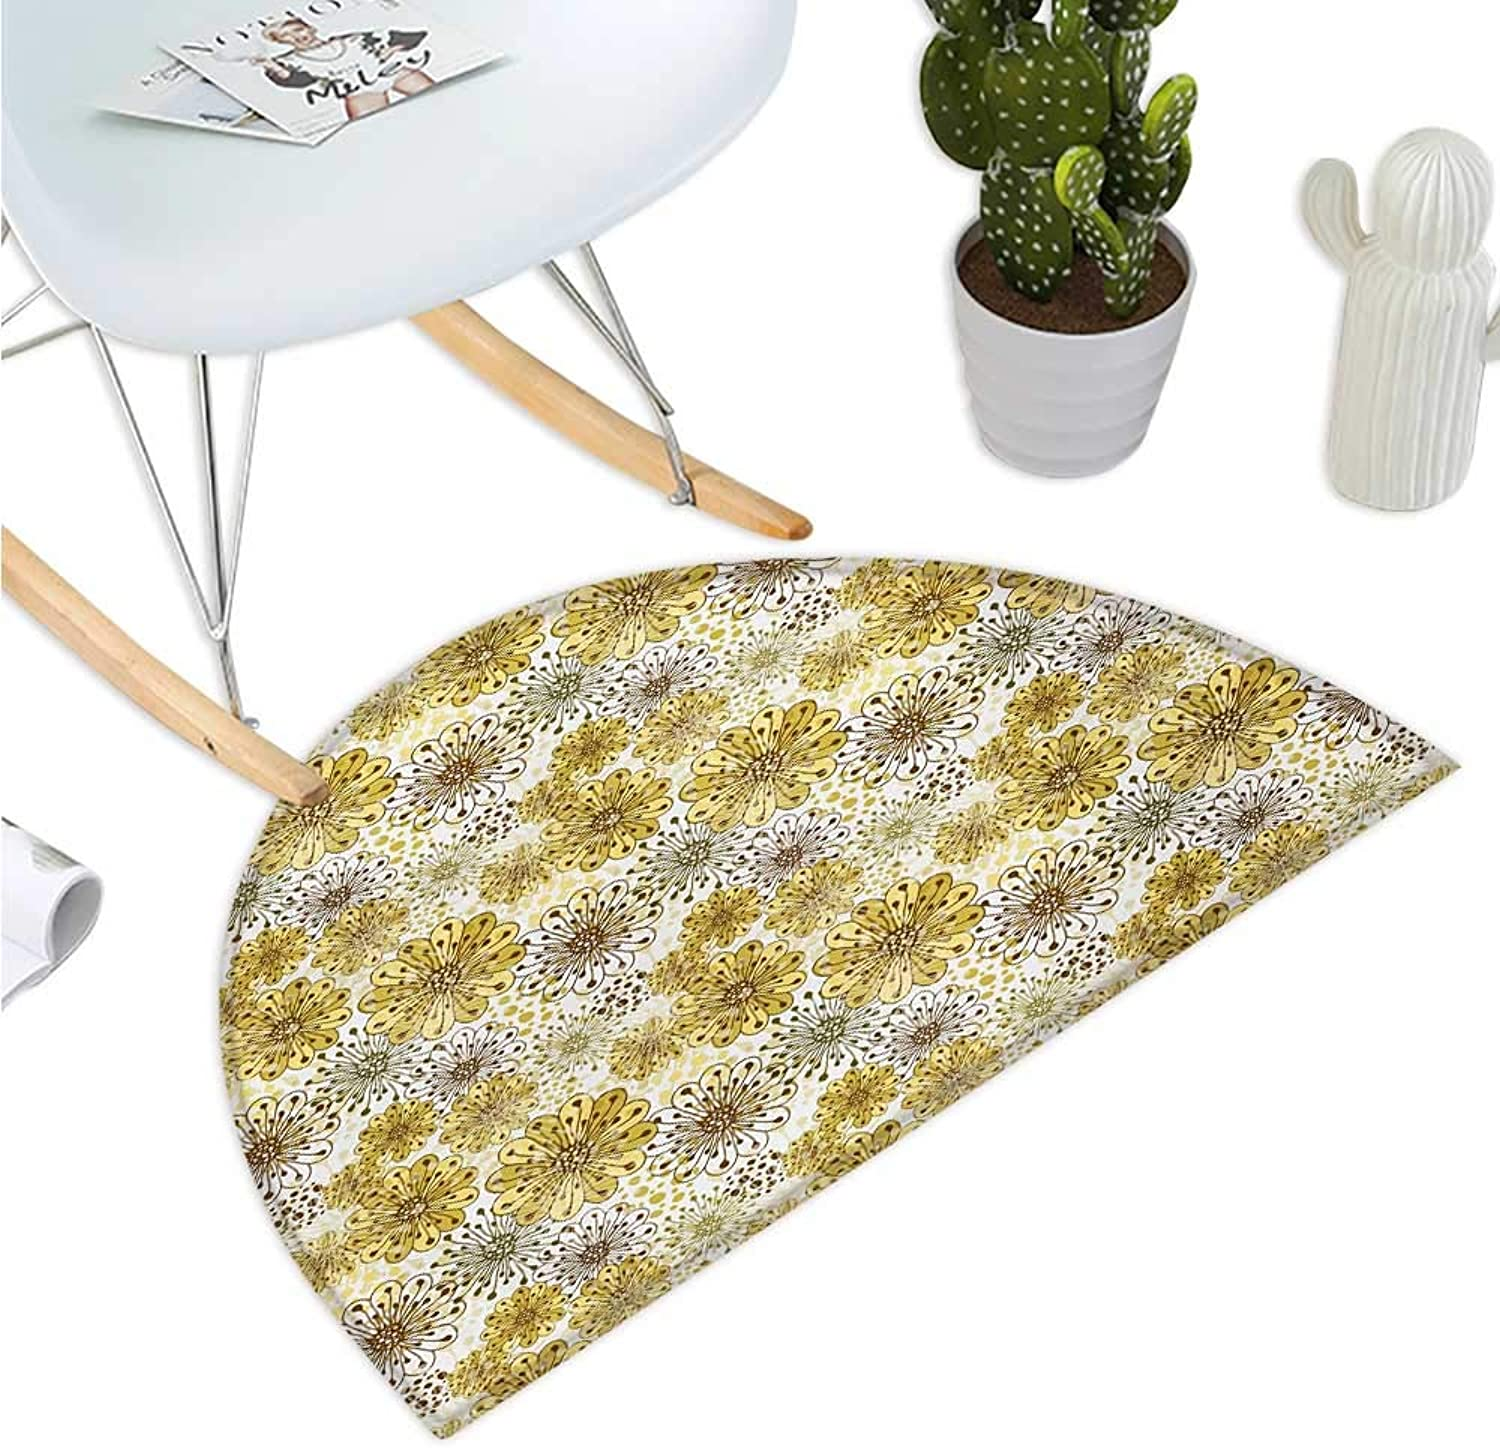 Floral Semicircular Cushion Cute Artistic Blossoms Petals Modern Dots Abstract Bedding Plants Gardening Entry Door Mat H 43.3  xD 64.9  Khaki Brown White